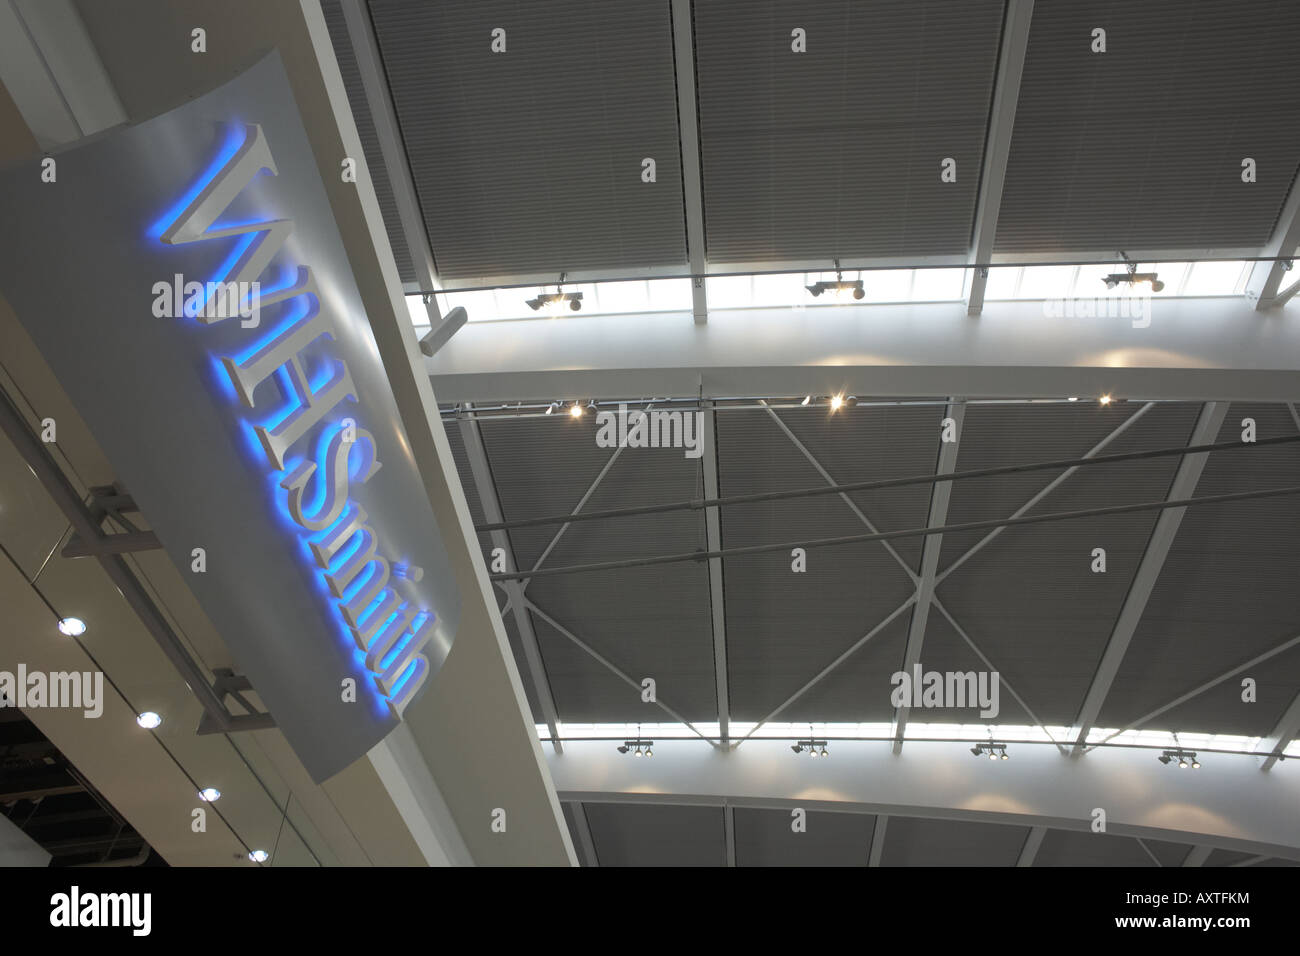 Looking upwards to WH Smiths retail sign in landside Departures area newly opened London Heathrow Airport's - Stock Image